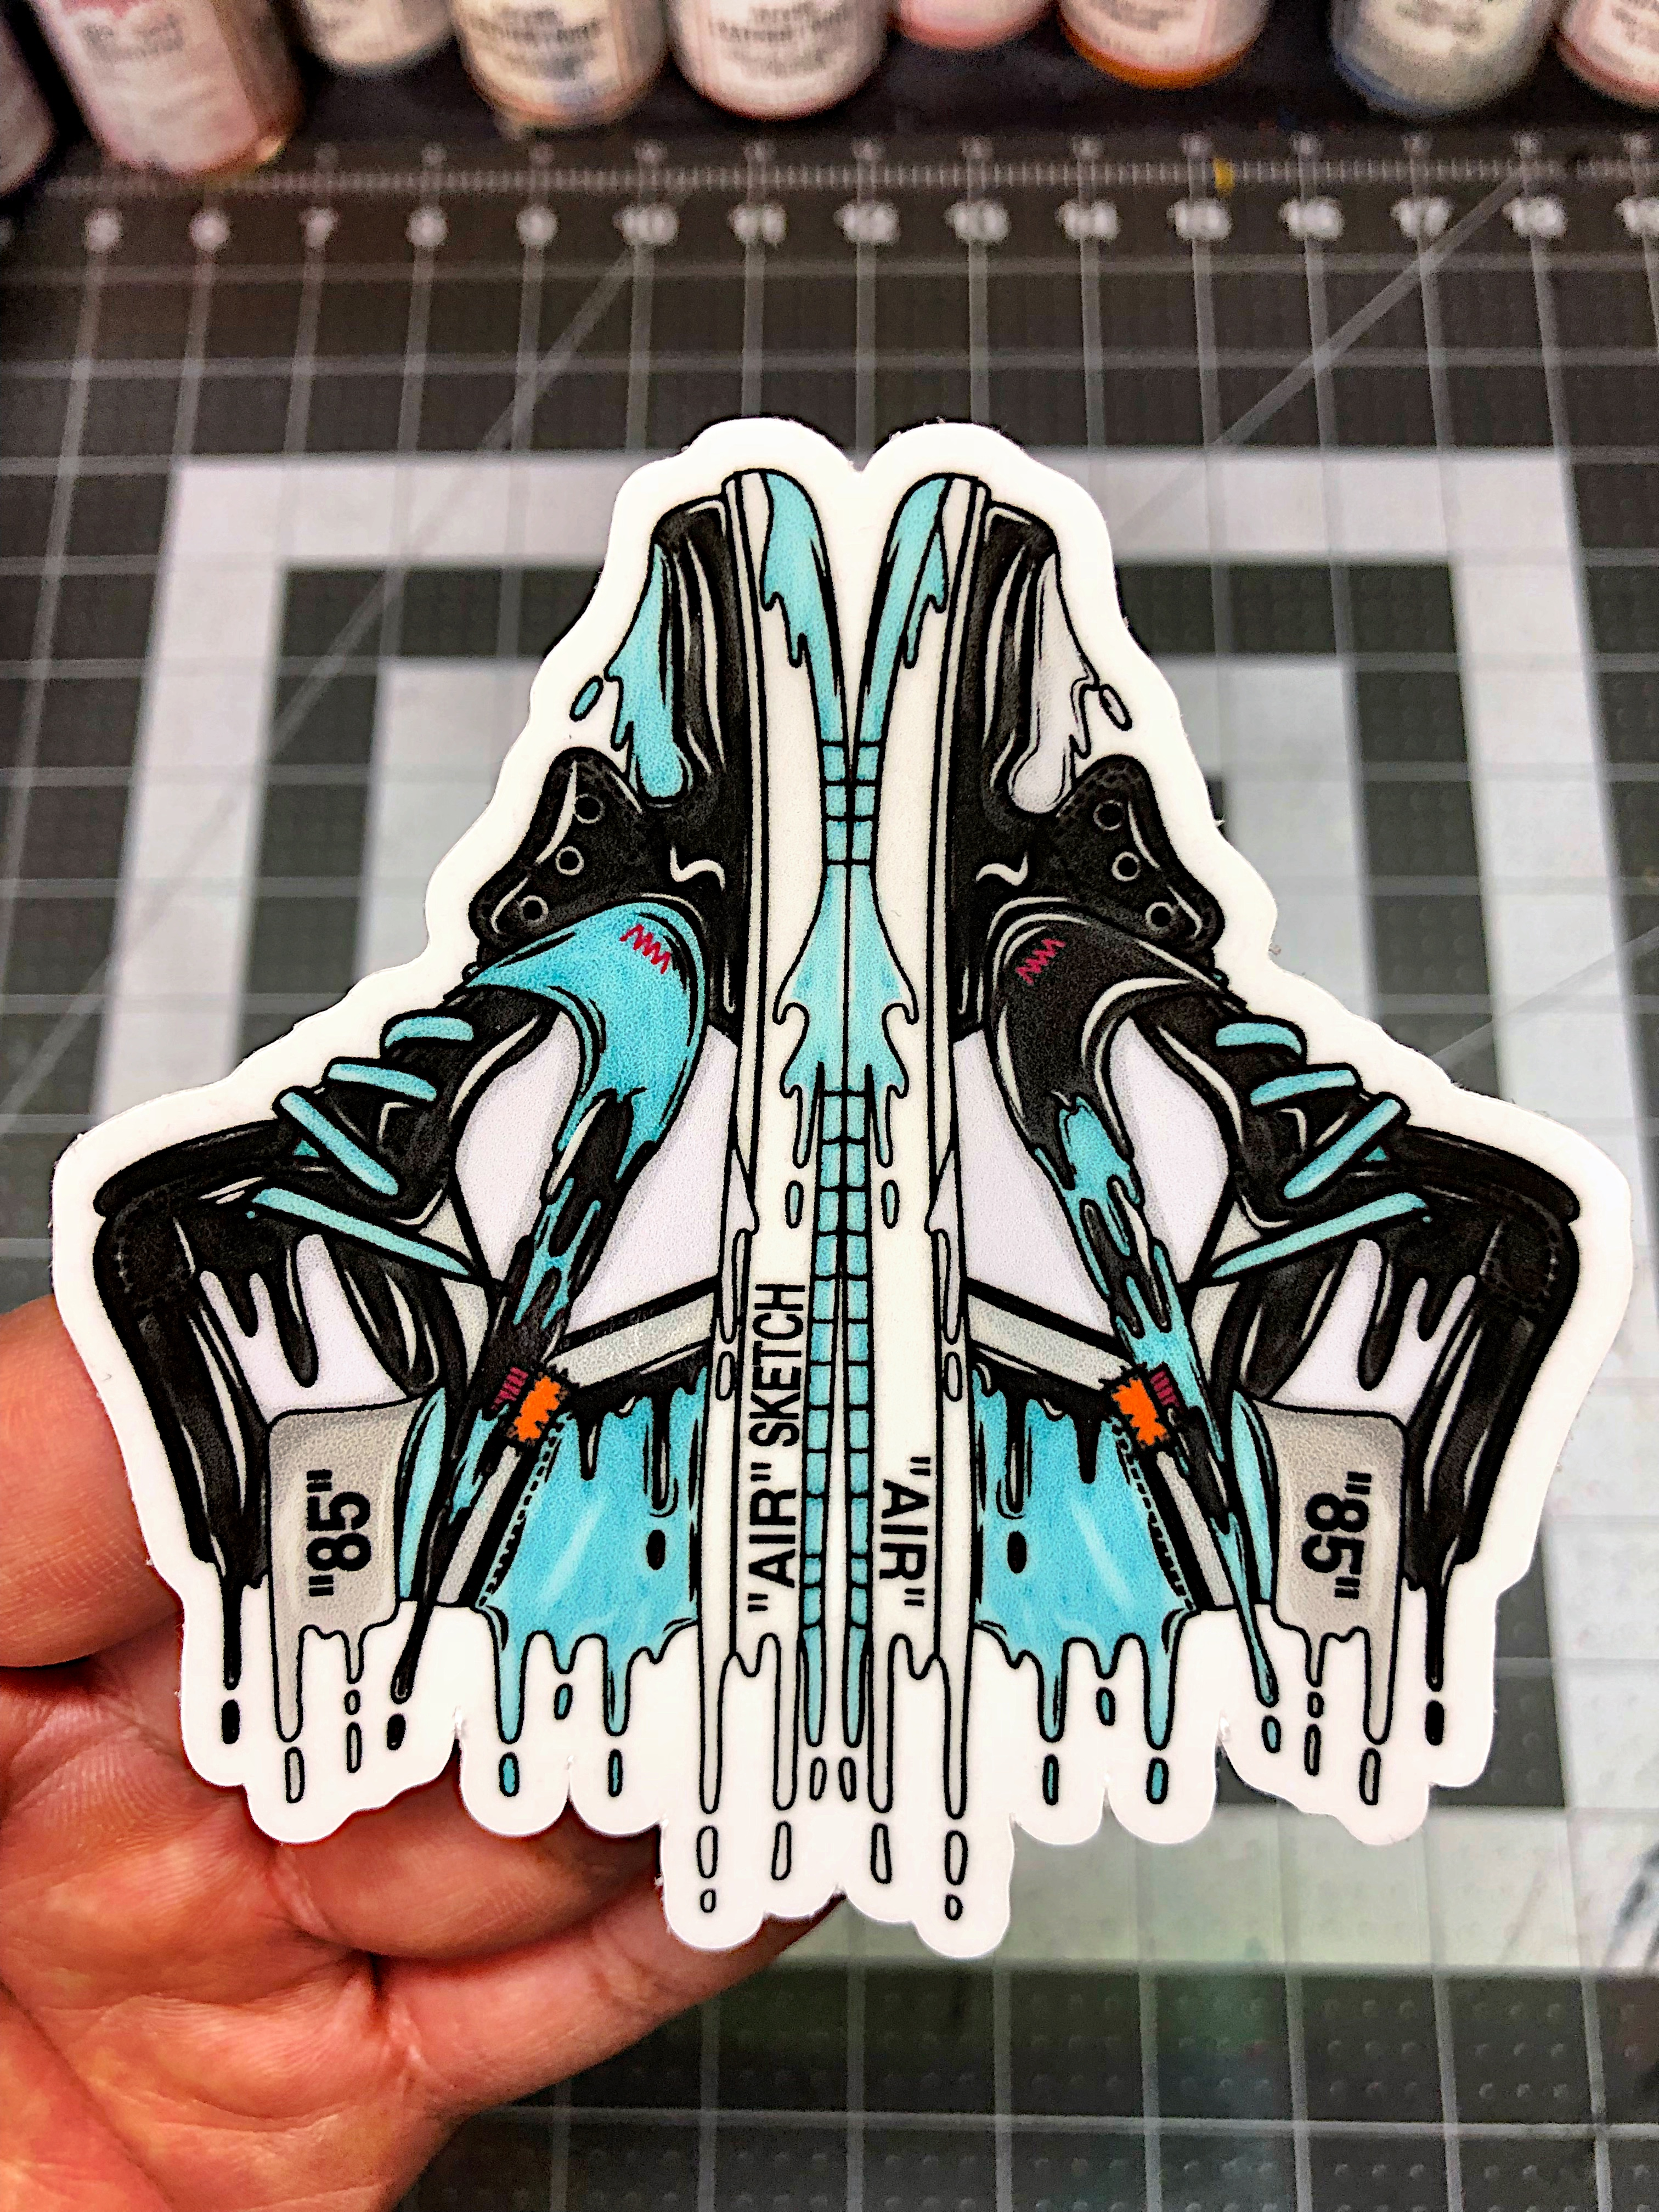 Feelgood Custom Die Cut Kicks Stickers